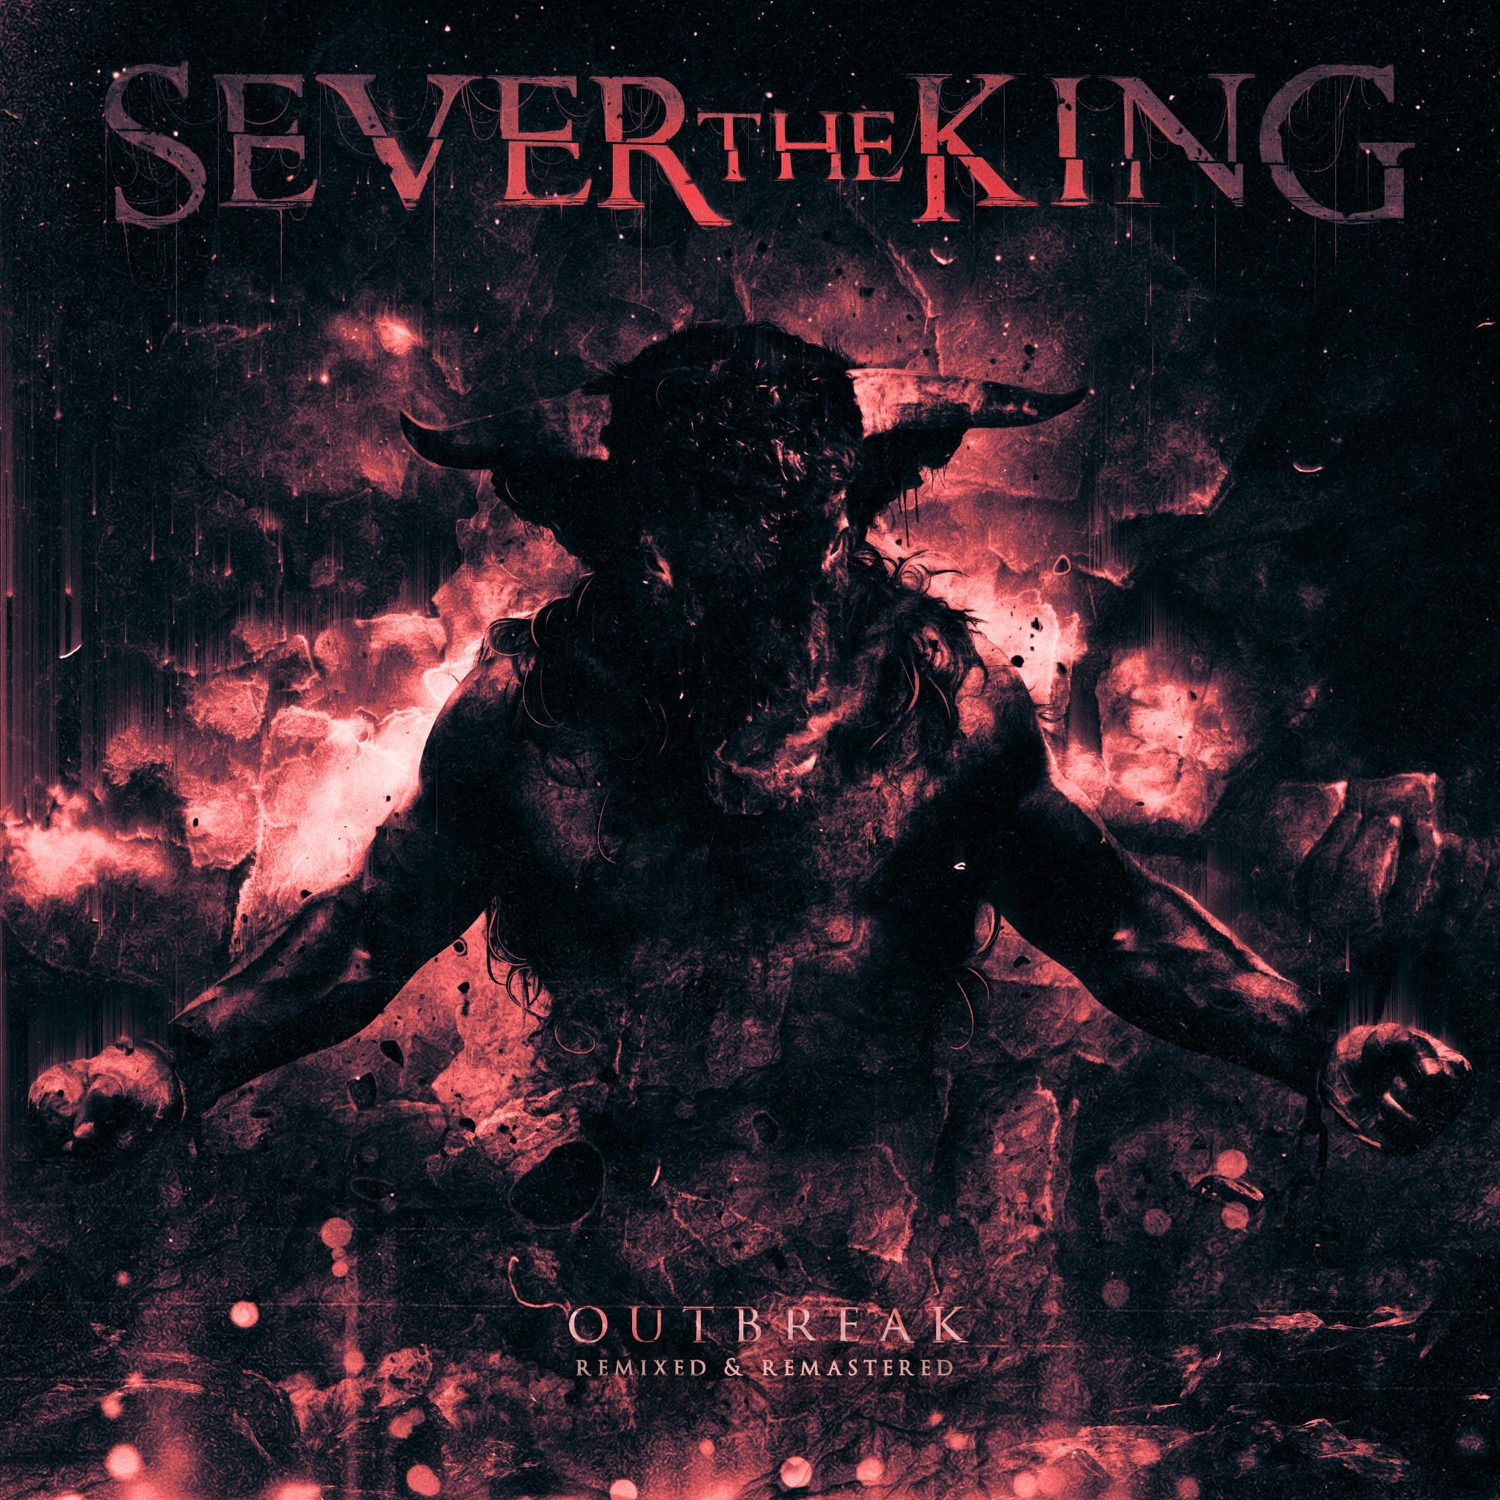 Sever the King - Outbreak [Remixed & Remastered] (2018)